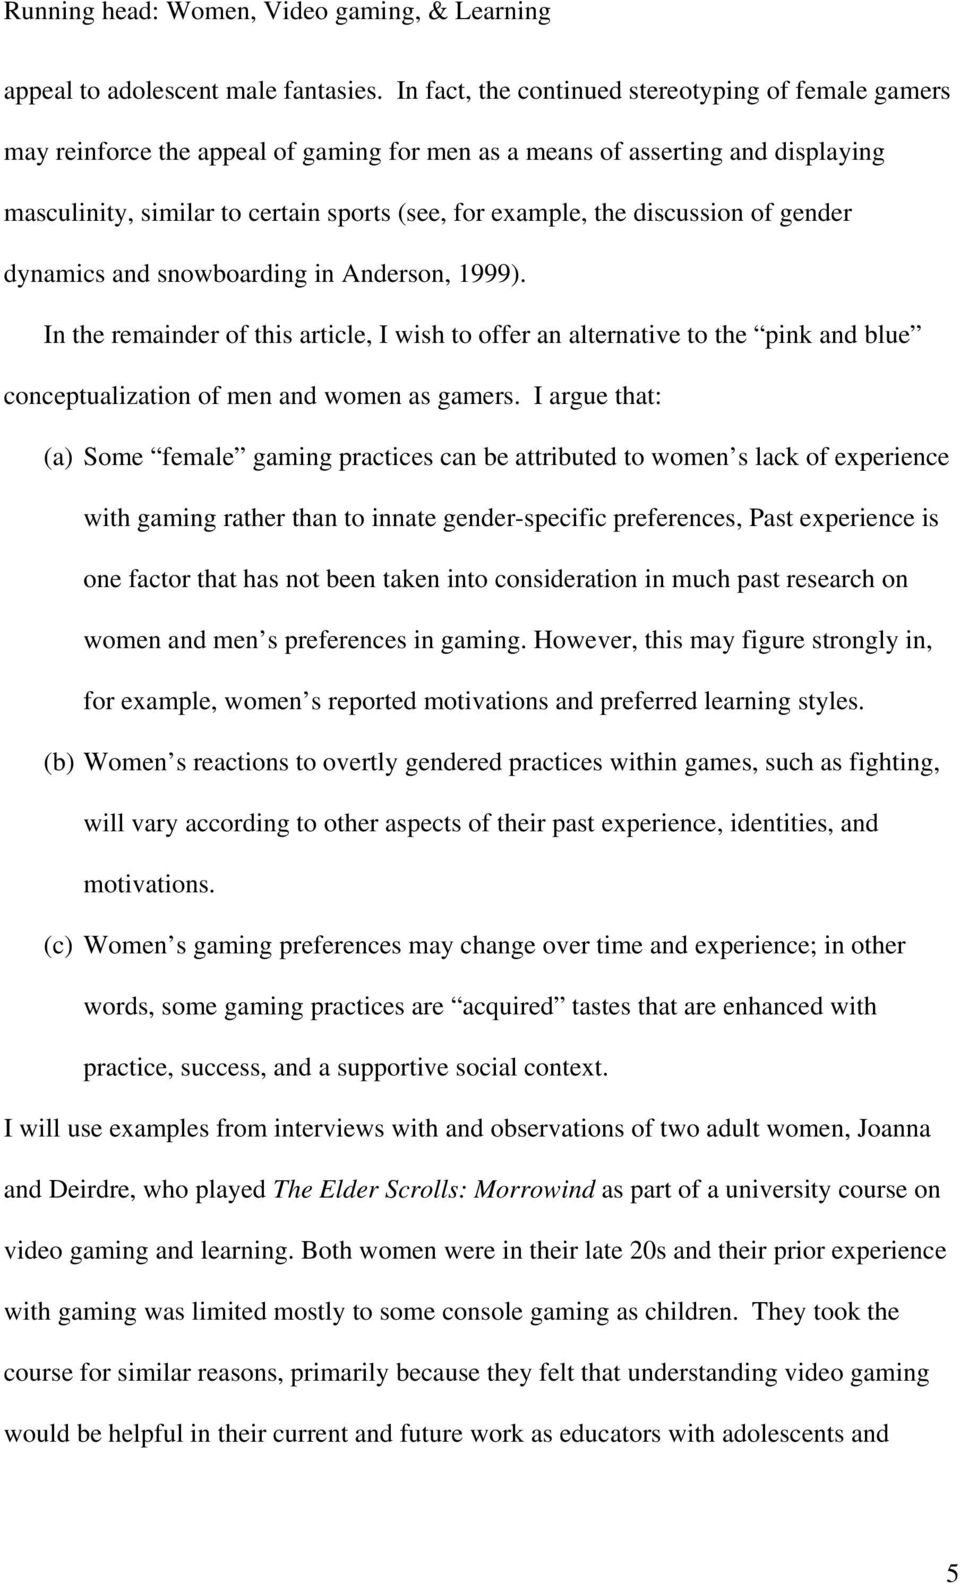 discussion of gender dynamics and snowboarding in Anderson, 1999). In the remainder of this article, I wish to offer an alternative to the pink and blue conceptualization of men and women as gamers.